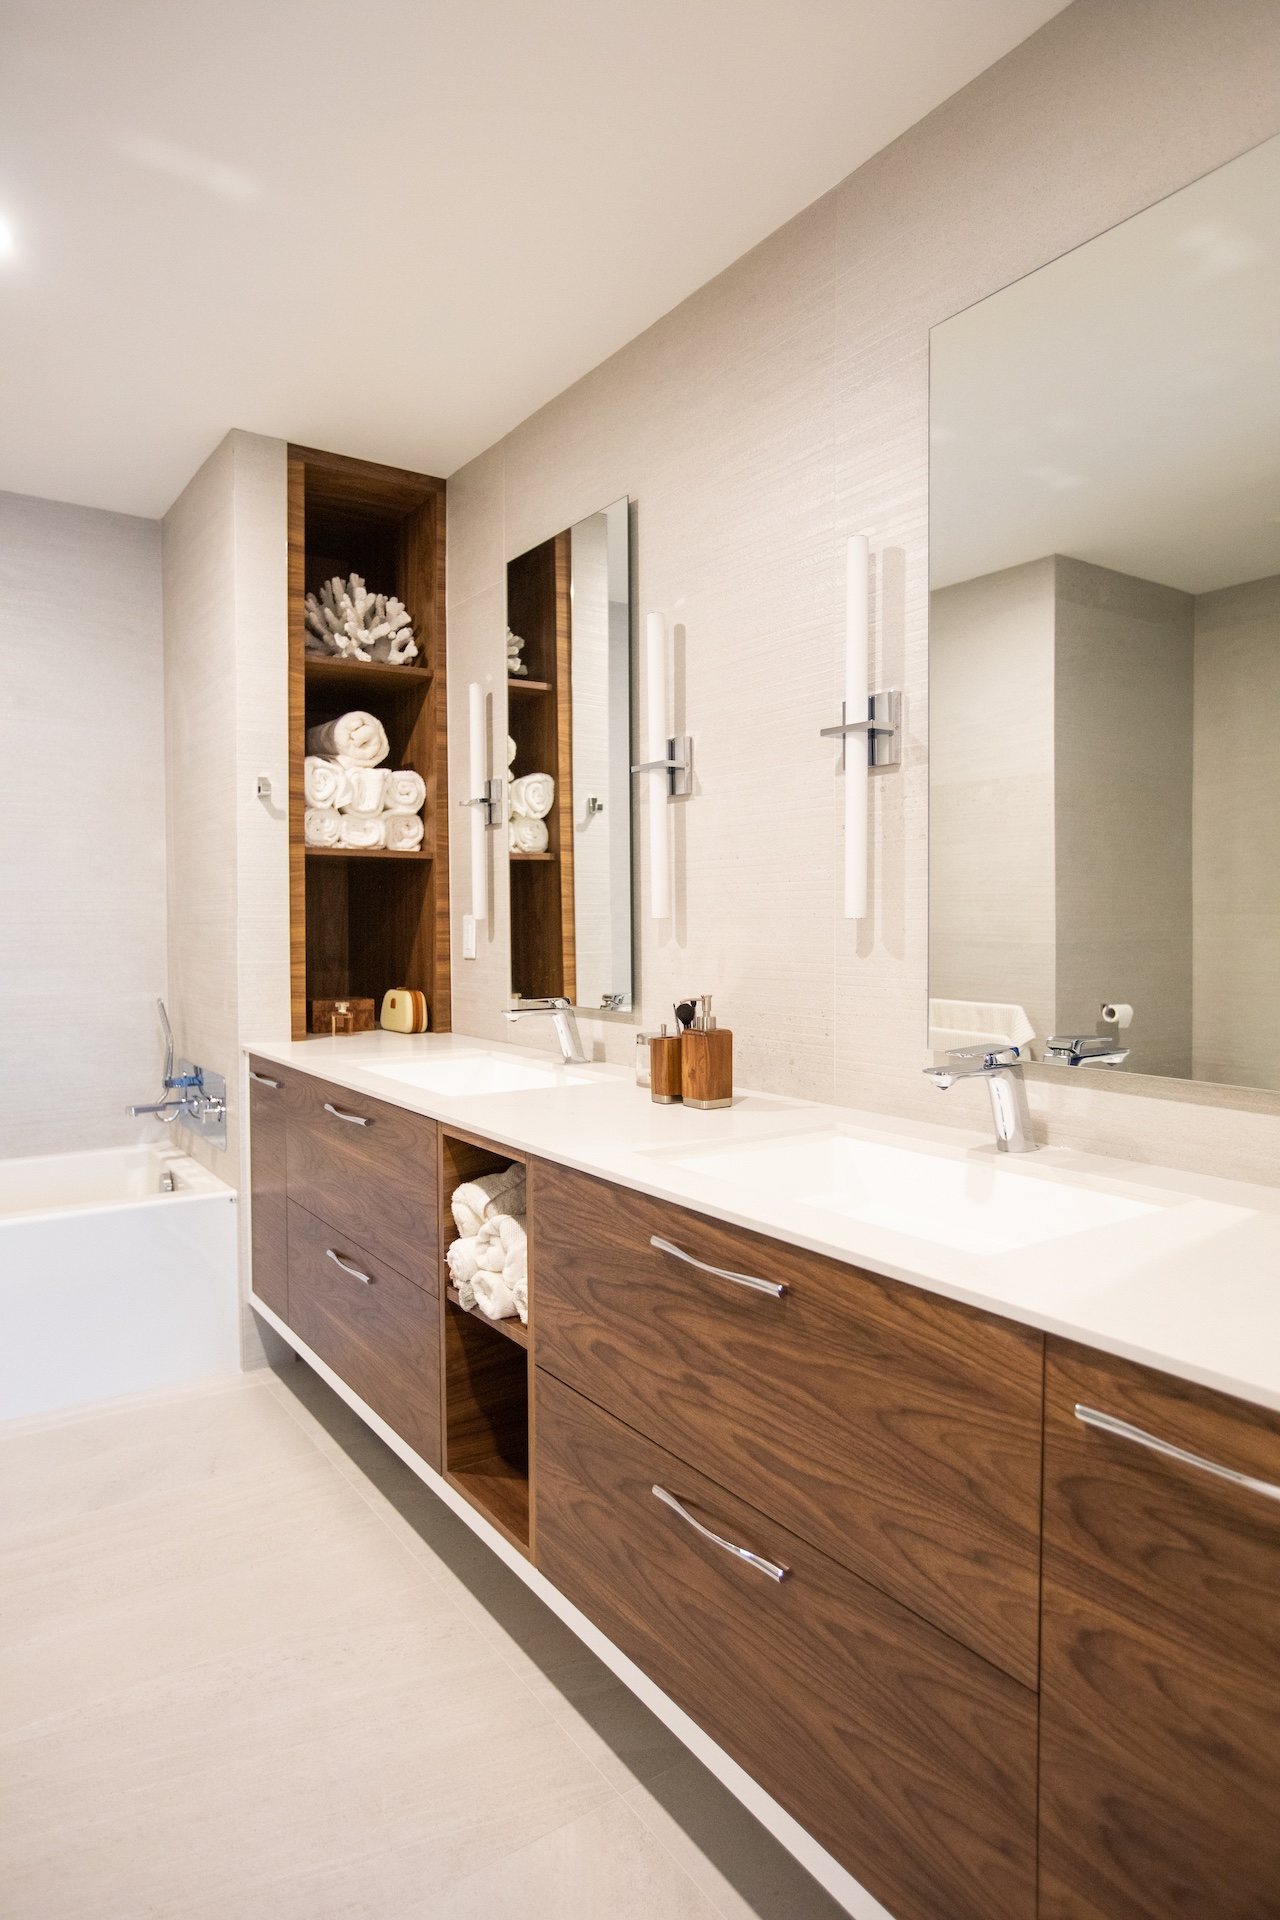 bath vanity double sinks